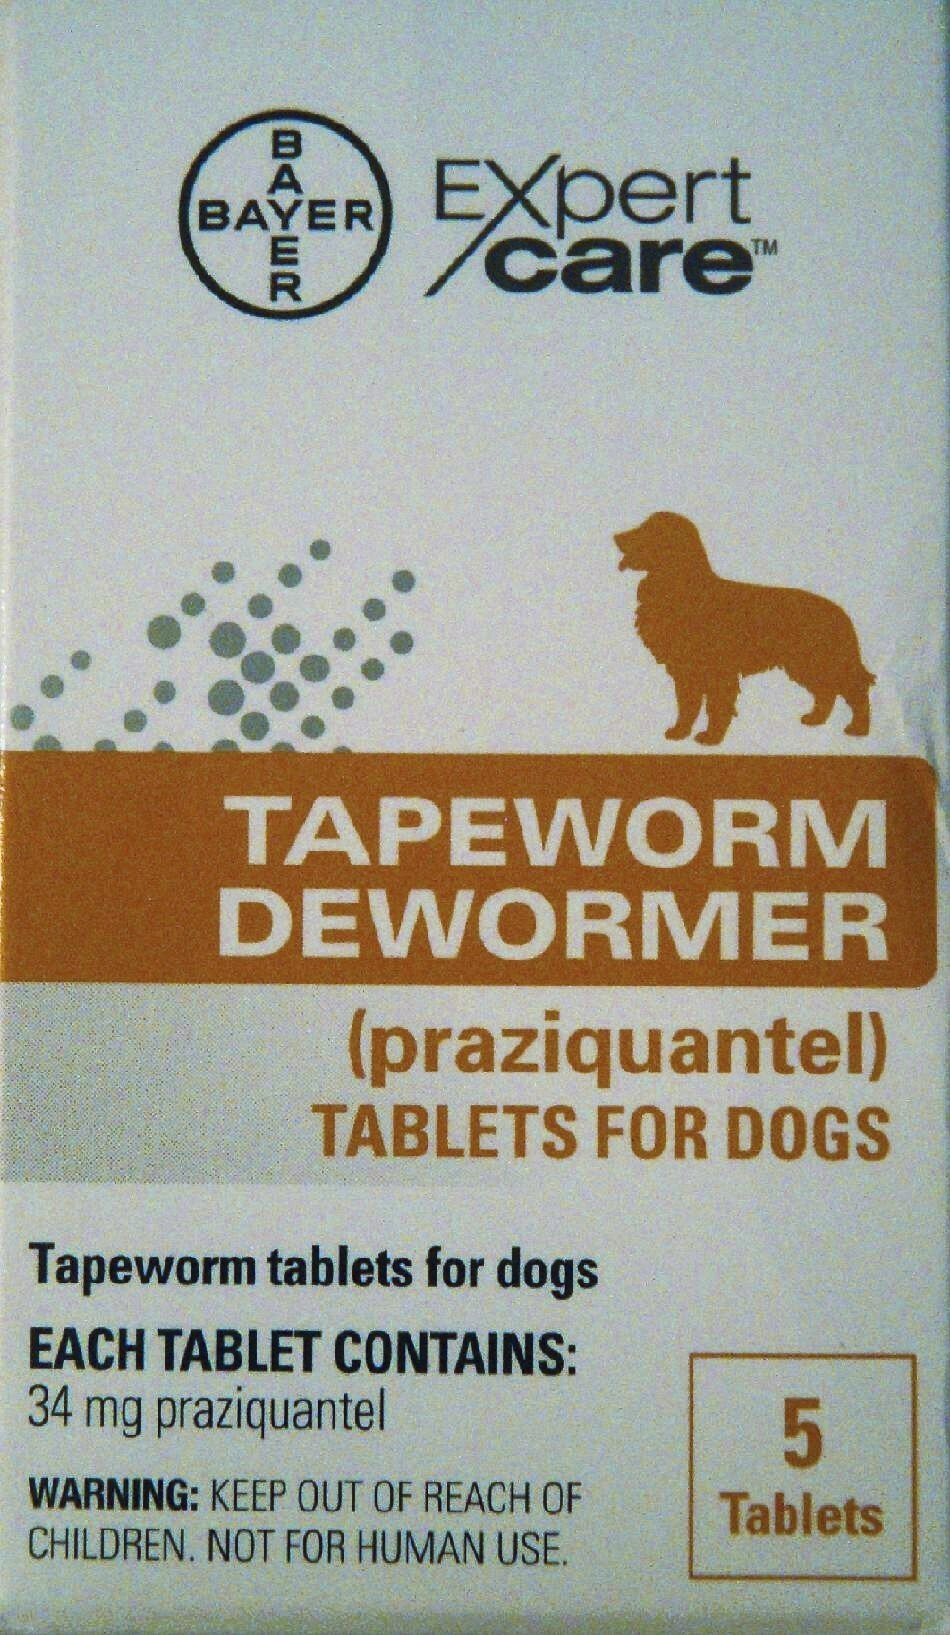 Tapeworm Dewormer for Dogs (5 Tablets)